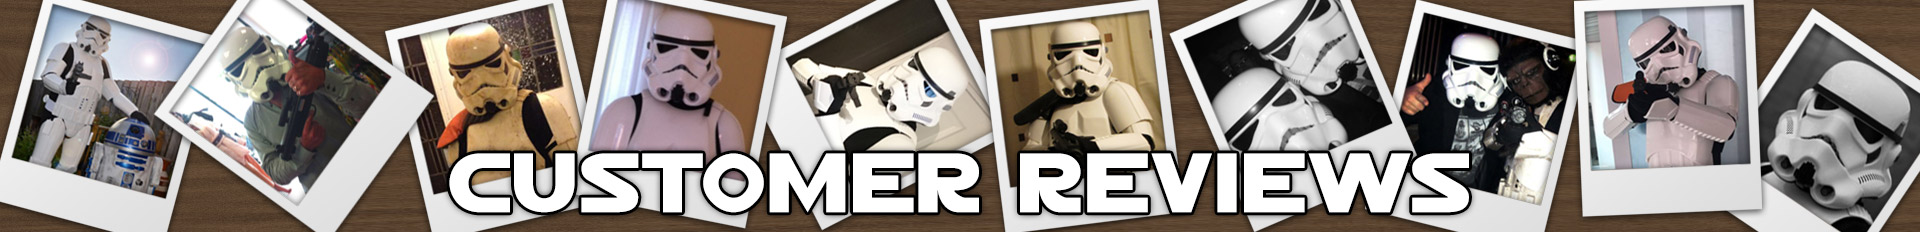 Stormtrooper-Costumes.com Customer Reviews